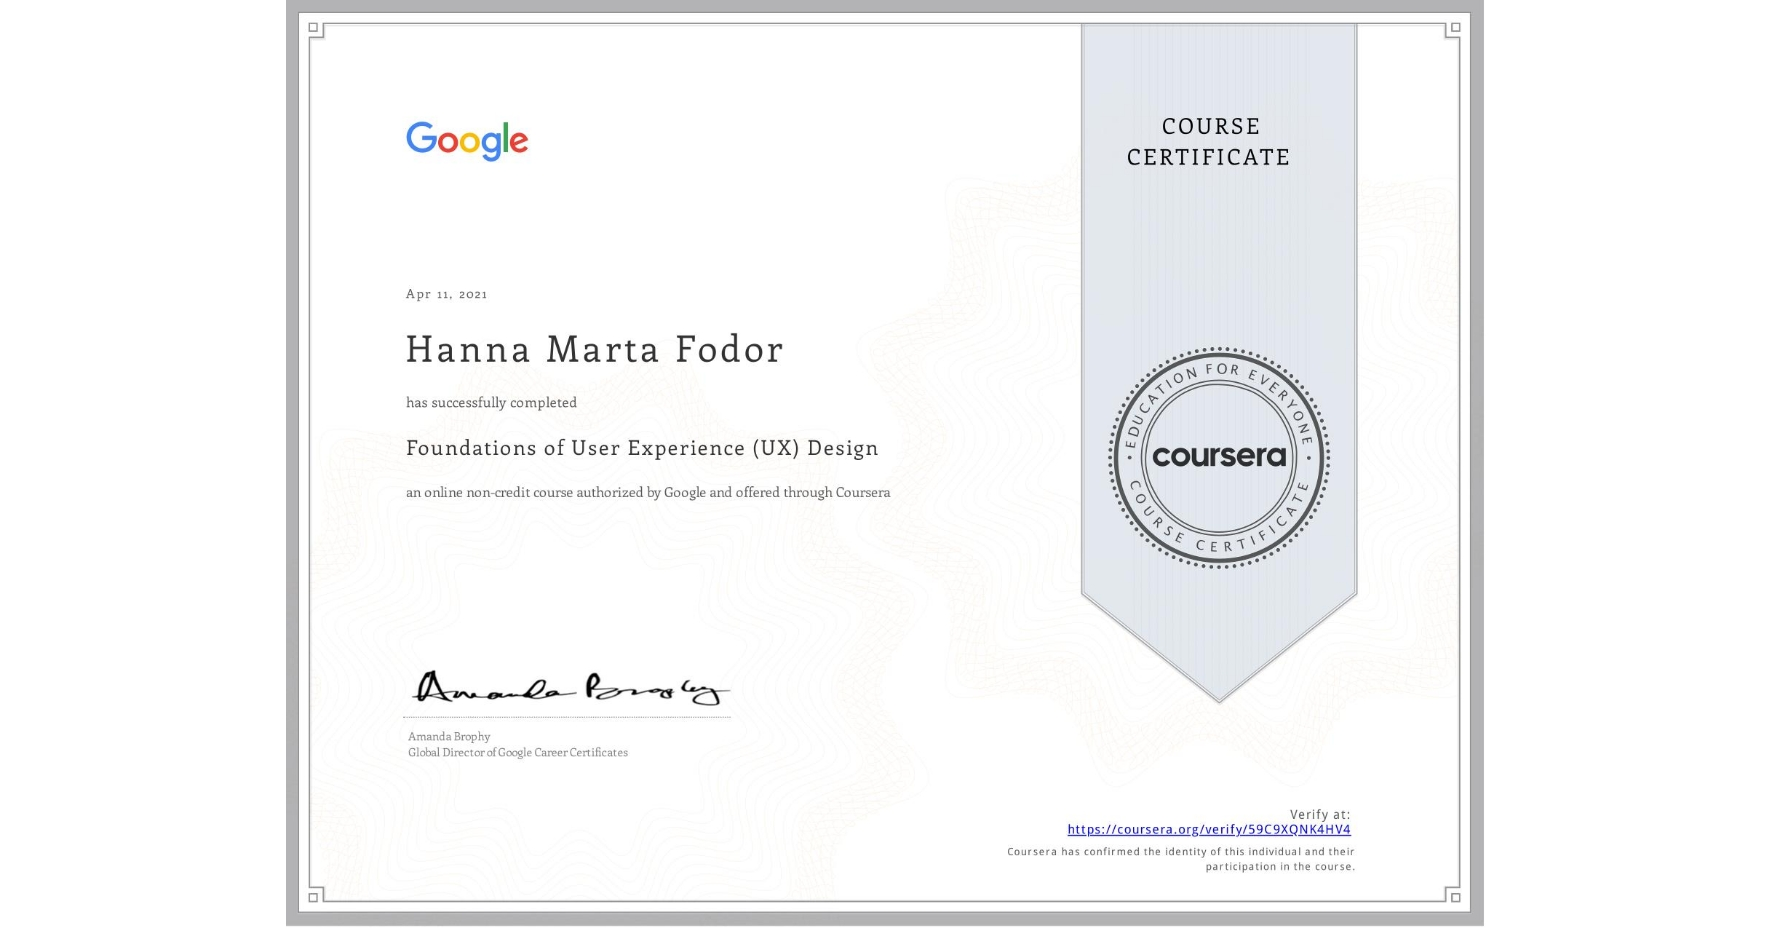 View certificate for Hanna Marta Fodor, Foundations of User Experience (UX) Design, an online non-credit course authorized by Google and offered through Coursera